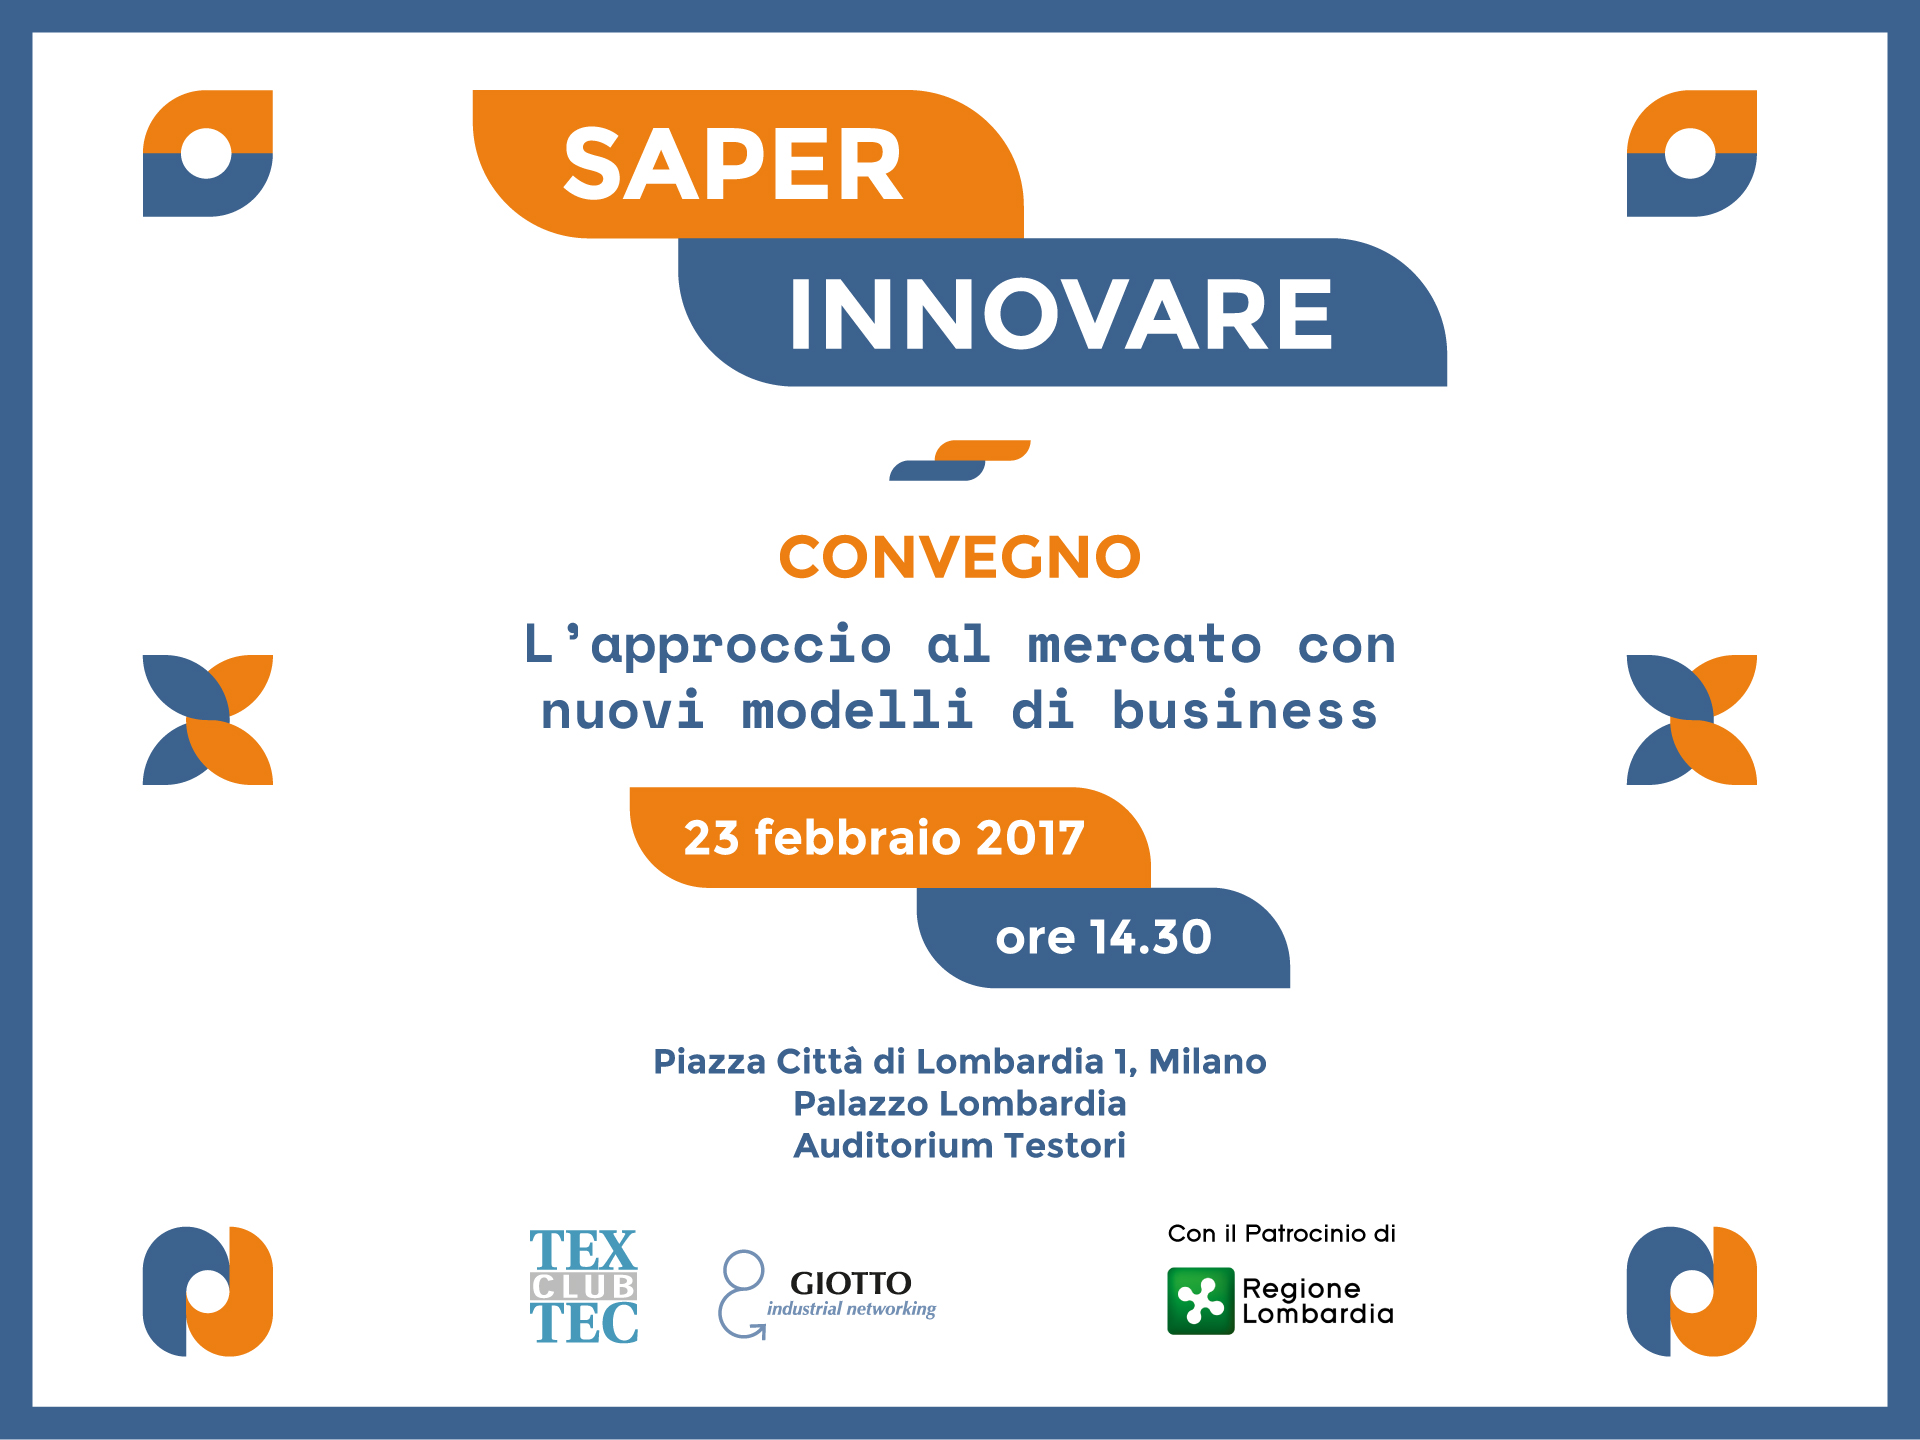 tex club tec_flyer saper innovare